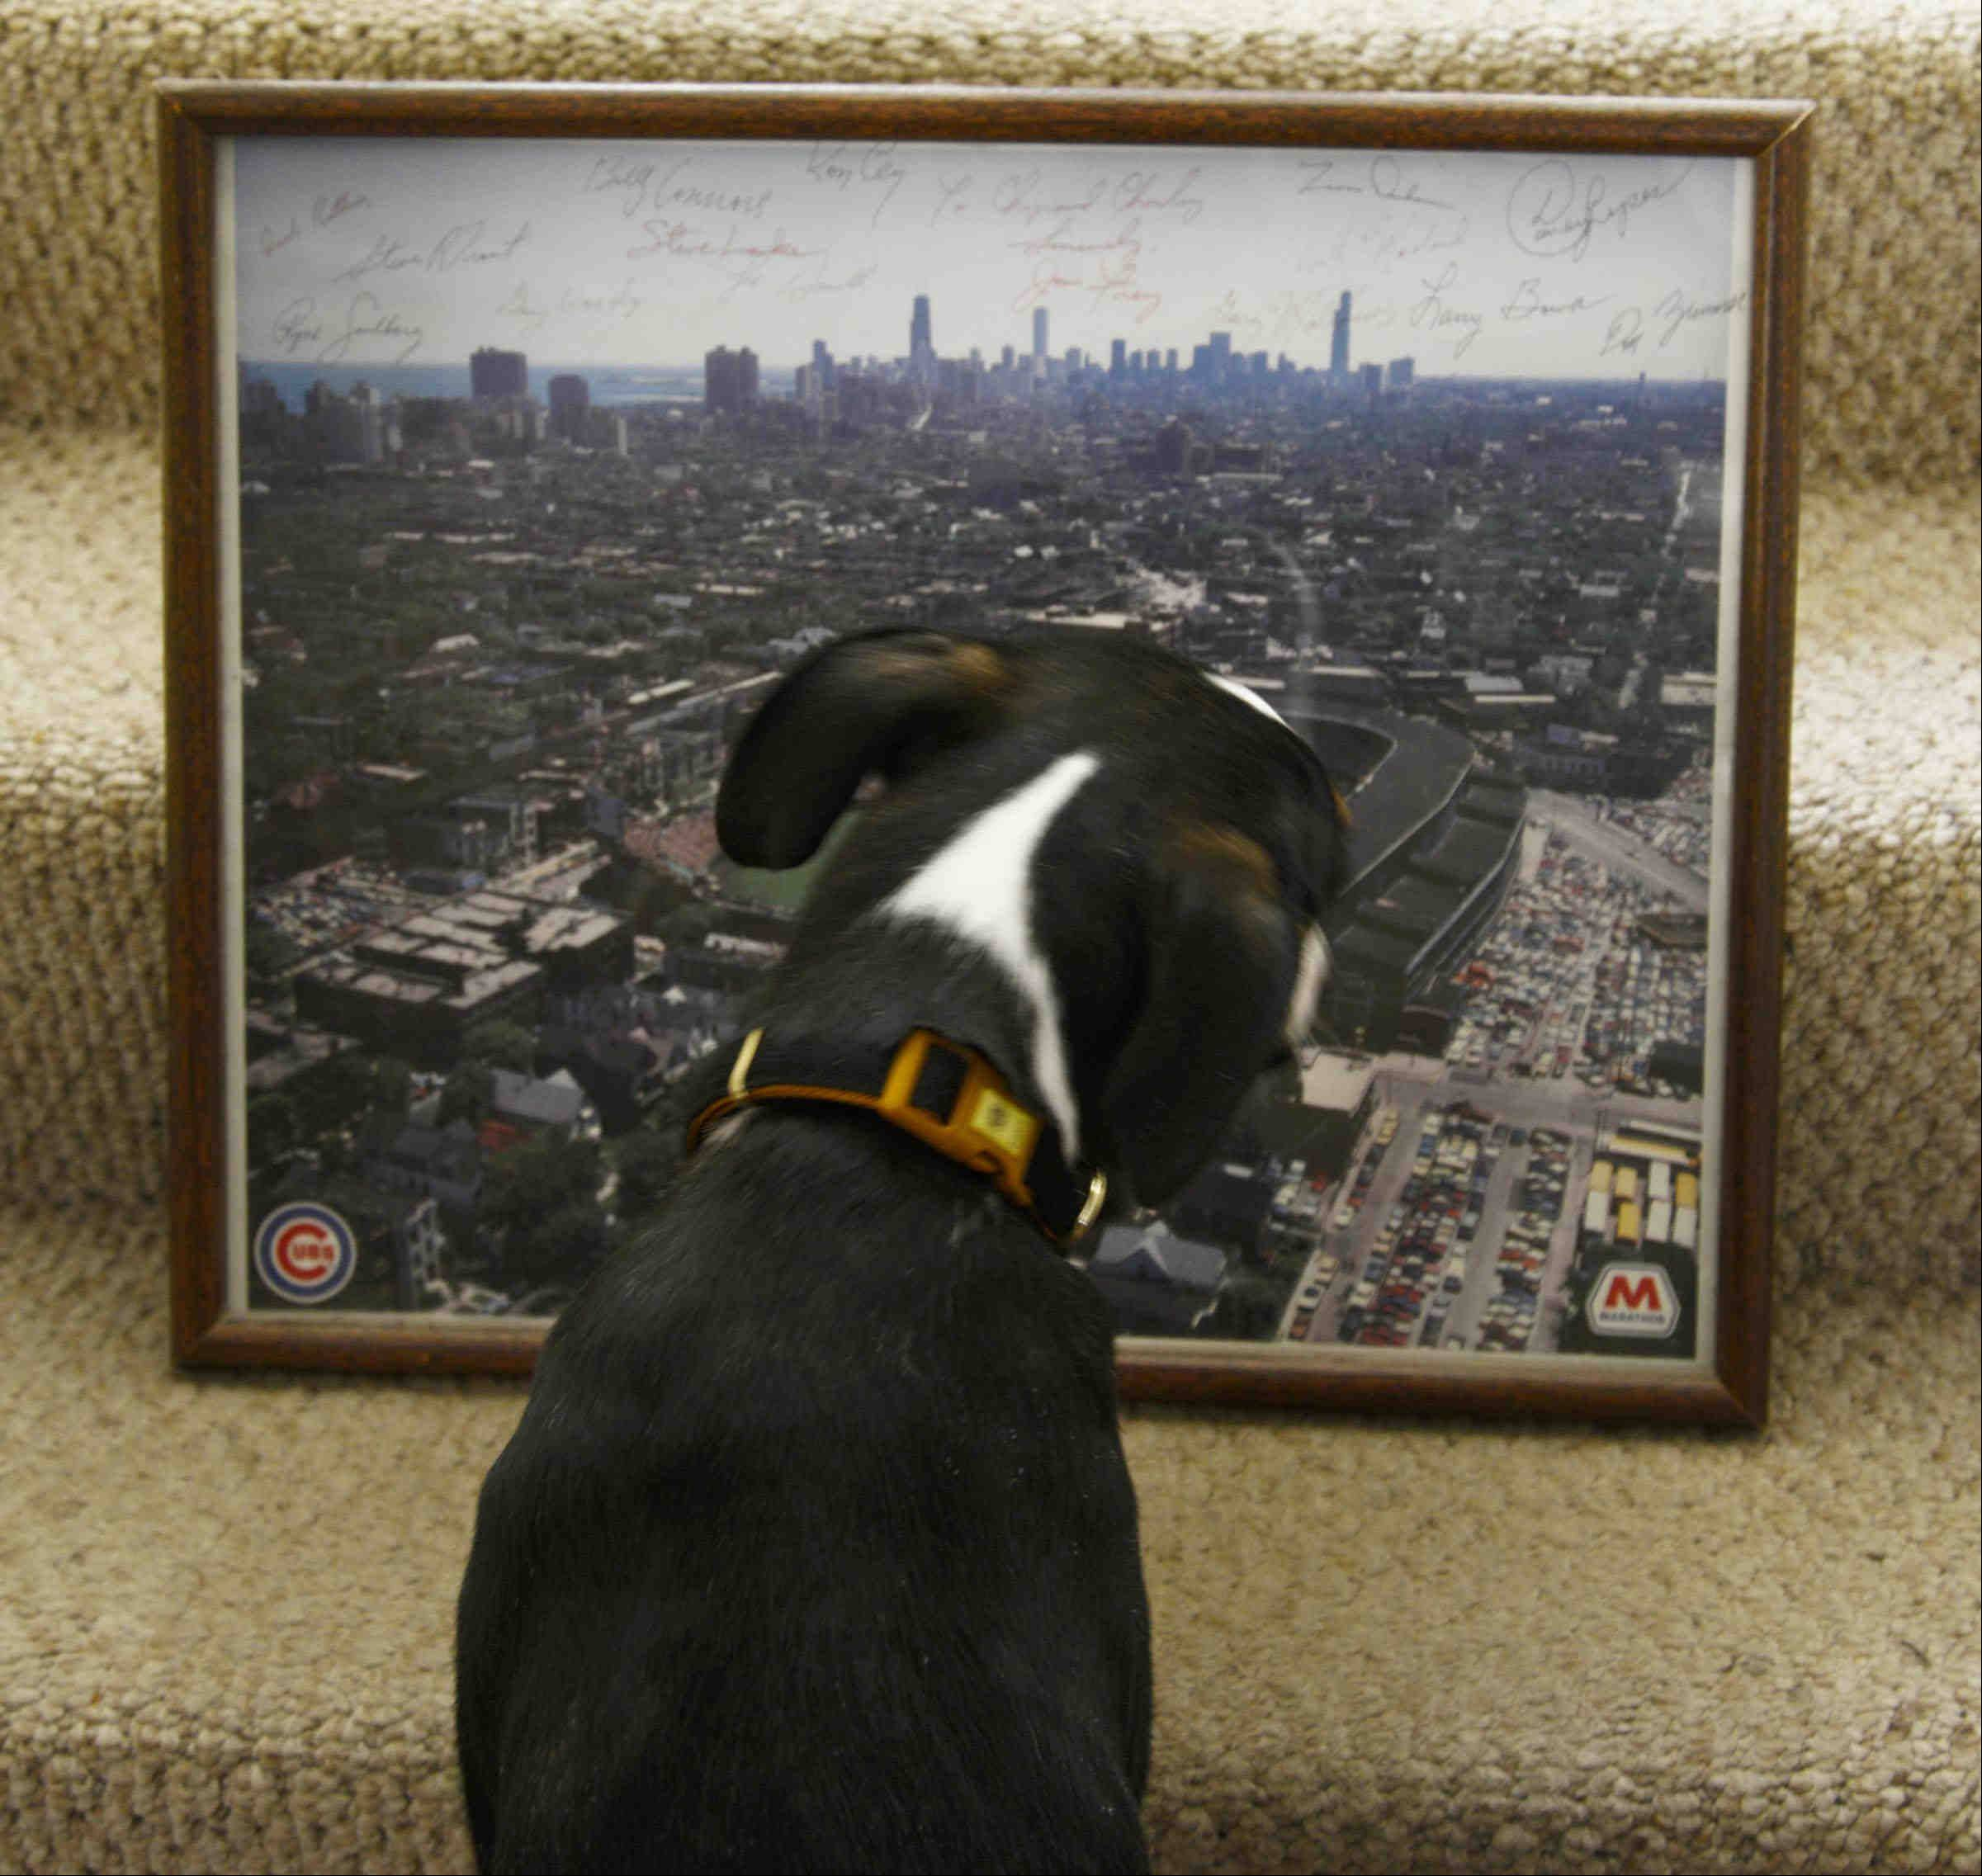 Getting a sense of what it means to be a Cubs fan, Ralph the puppy studies Charley McLenna's framed poster of Wrigley Field. Hanging in the McLenna's home in Lake in the Hills, the poster boasts autographs of players and coaches from the 1984 Cubs.